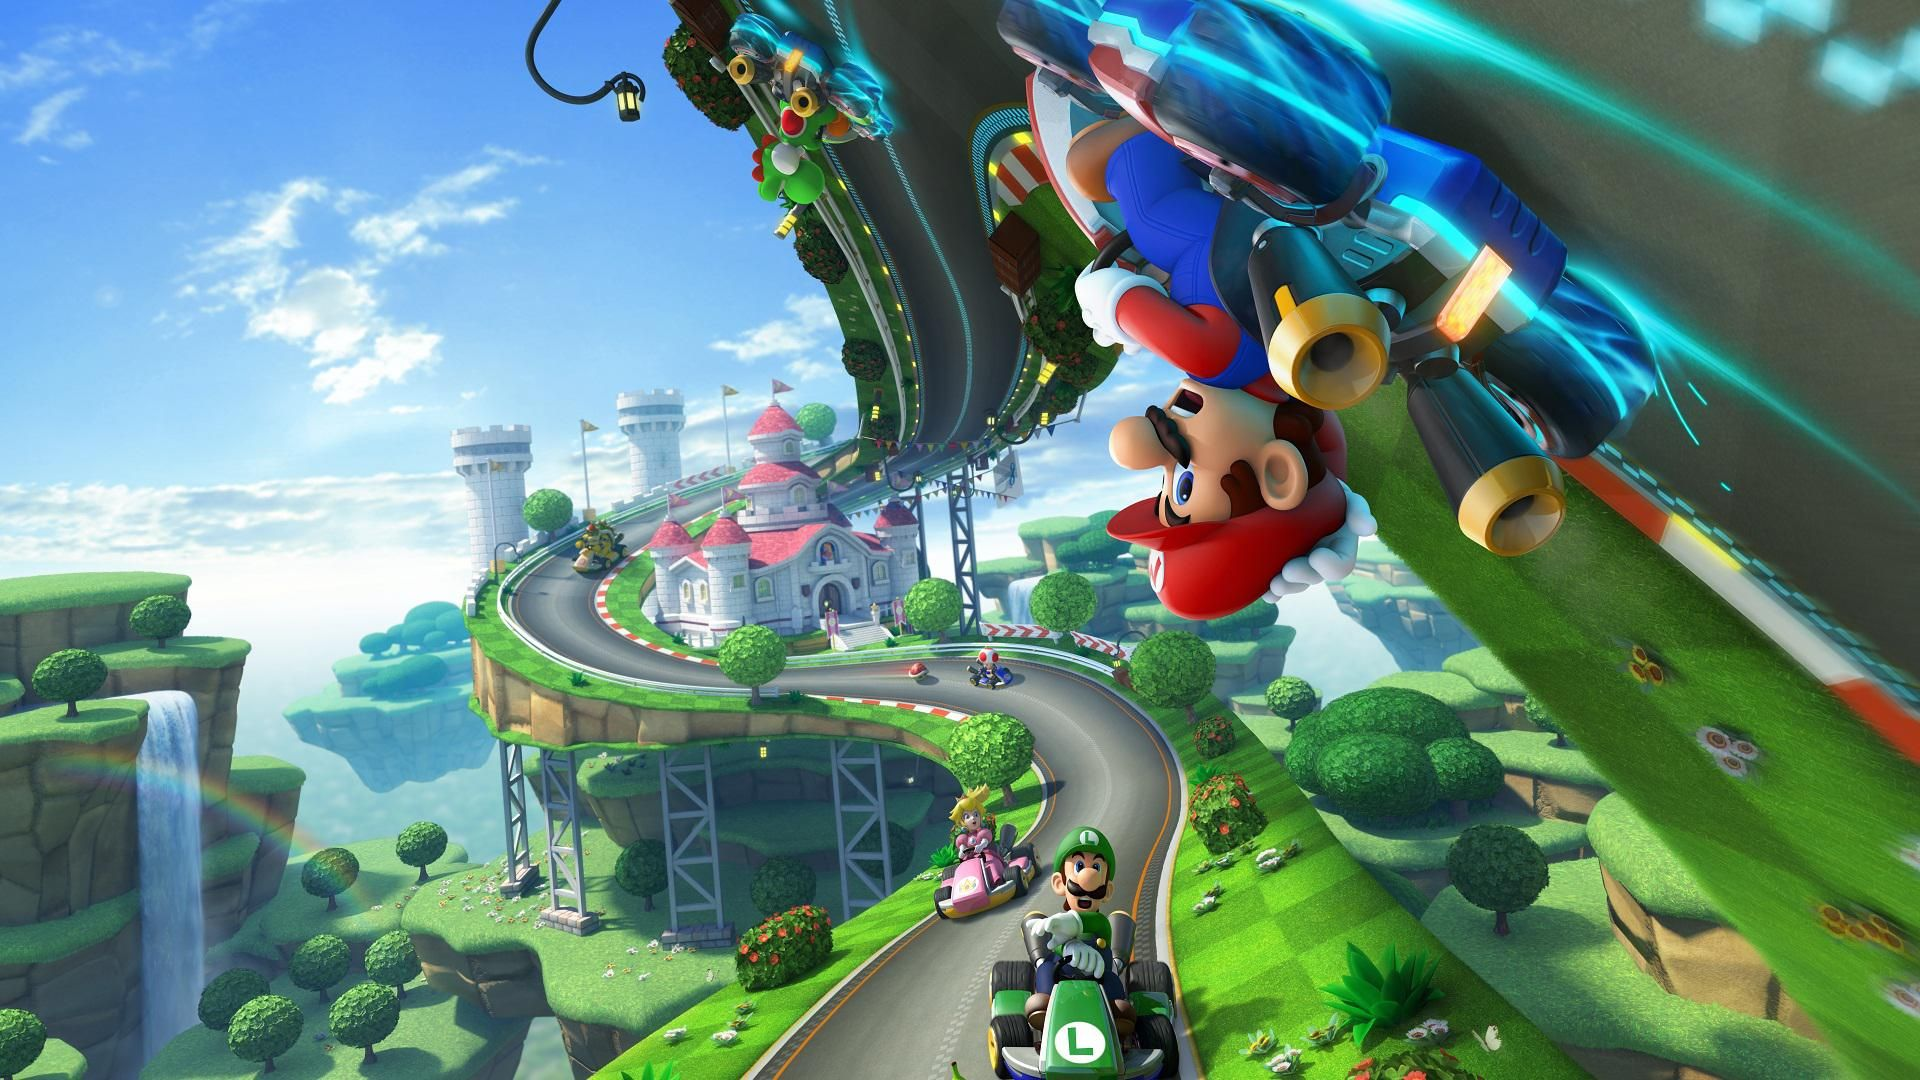 Super Mario HD Backgrounds Mario kart 8, Mario kart, Mario